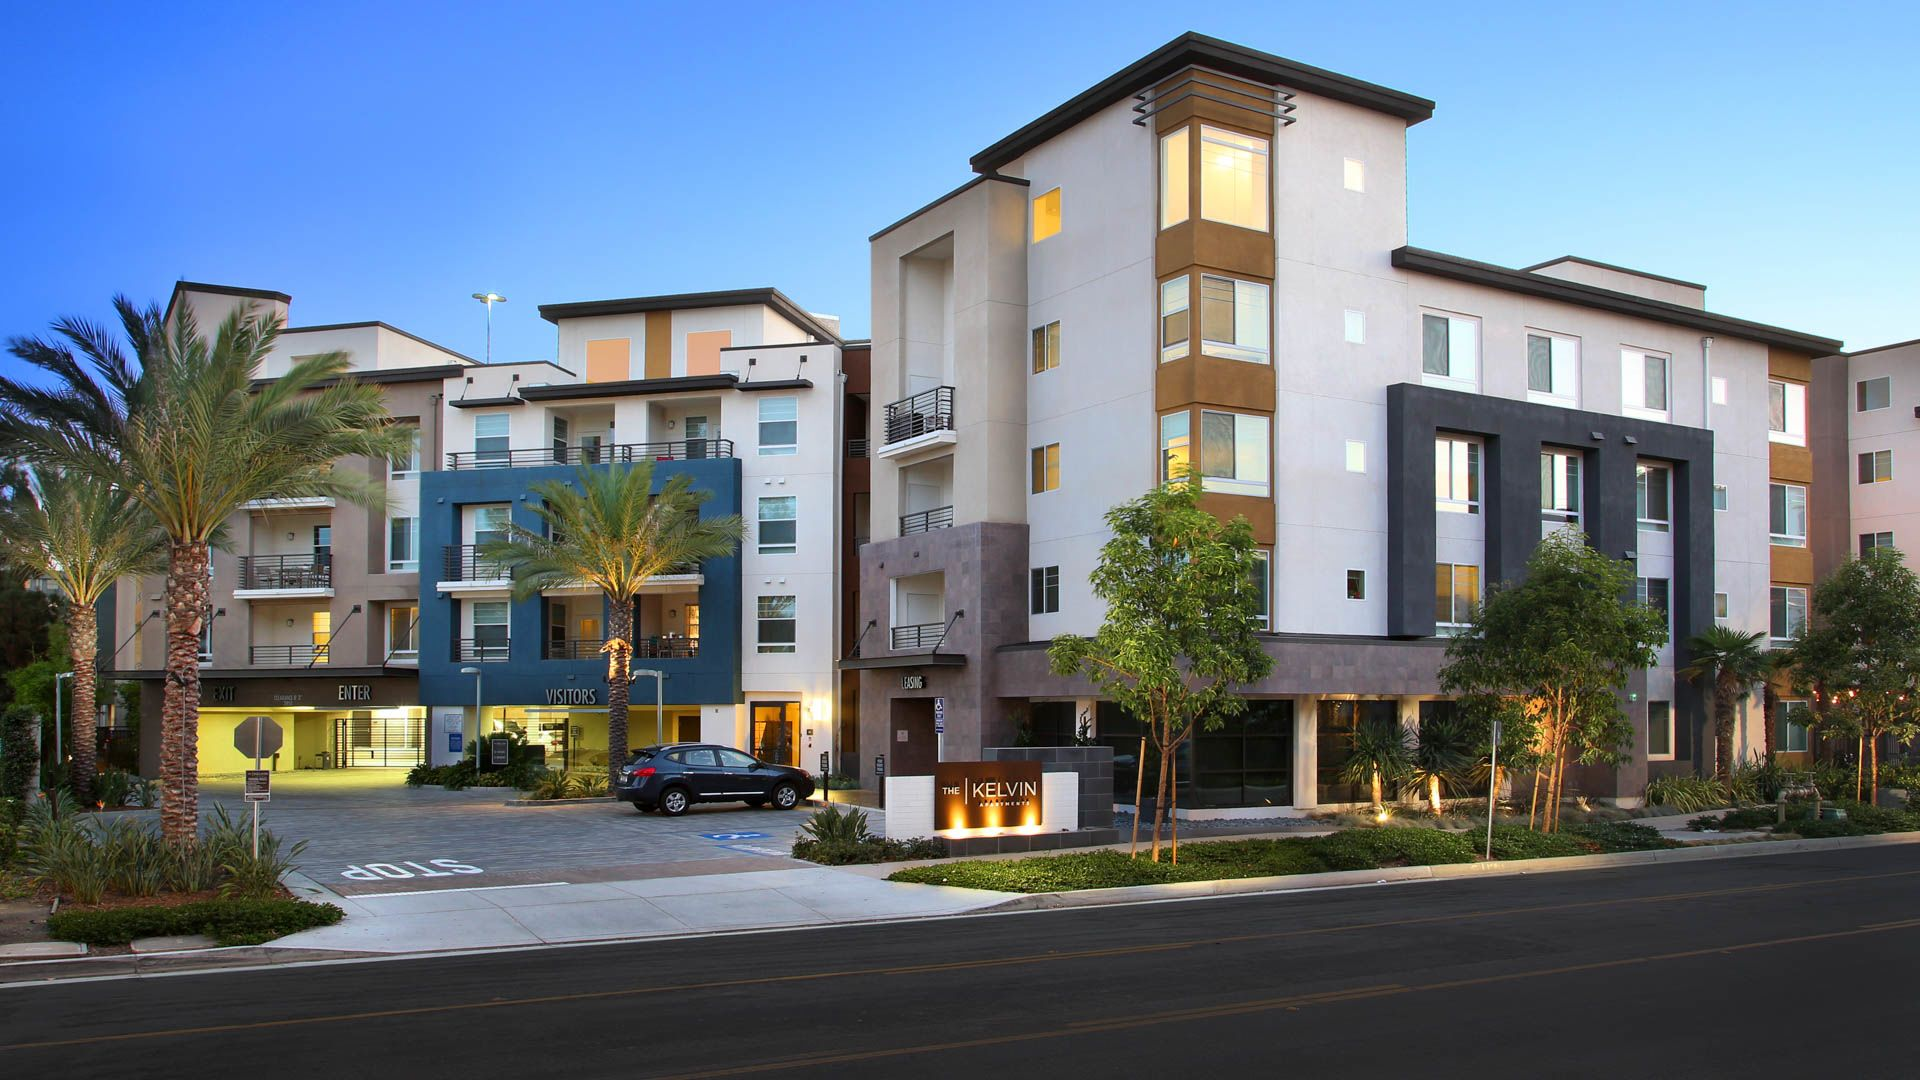 Apartments In Irvine Ca